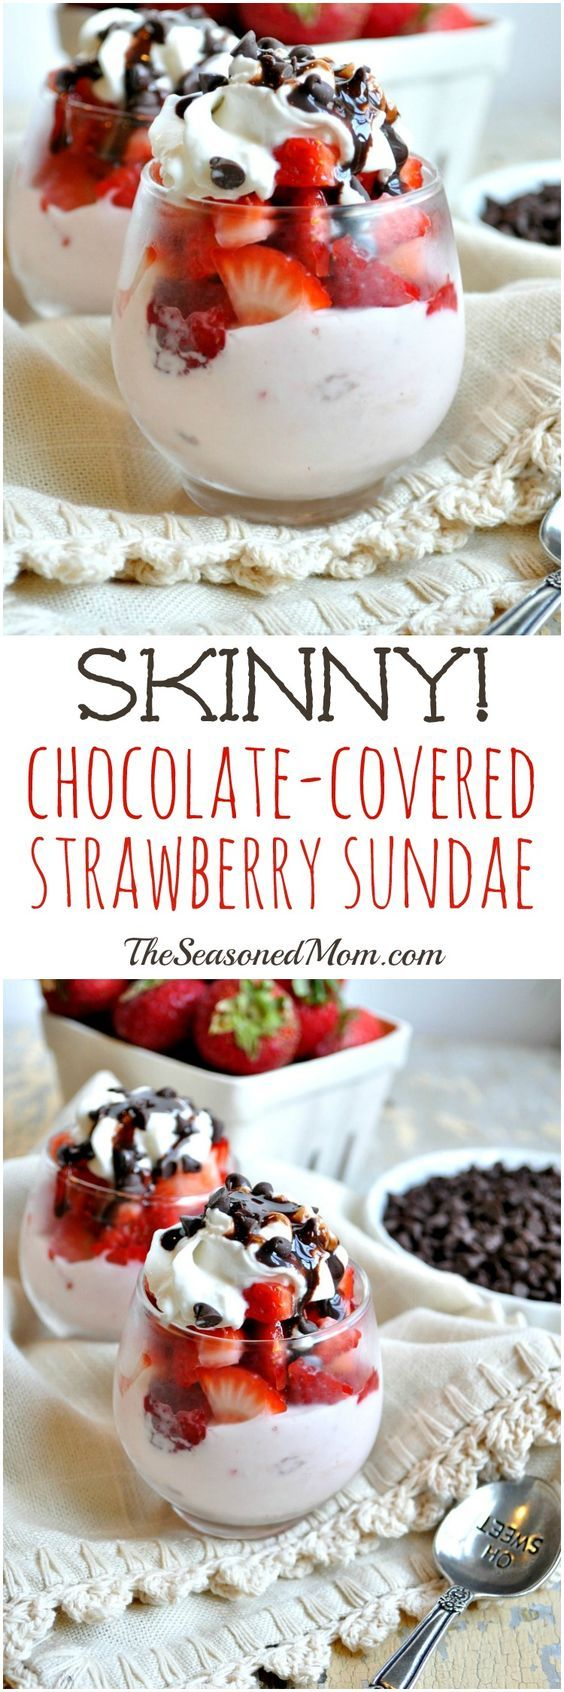 This SKINNY CHOCOLATE-COVERED STRAWBERRY SUNDAE is a 2-minute healthy snack or dessert that's high protein low calorie and actually good for you!This SKINNY CHOCOLATE-COVERED STRAWBERRY SUNDAE is a 2-minute healthy snack or dessert that's high protein low calorie and actually good for you!